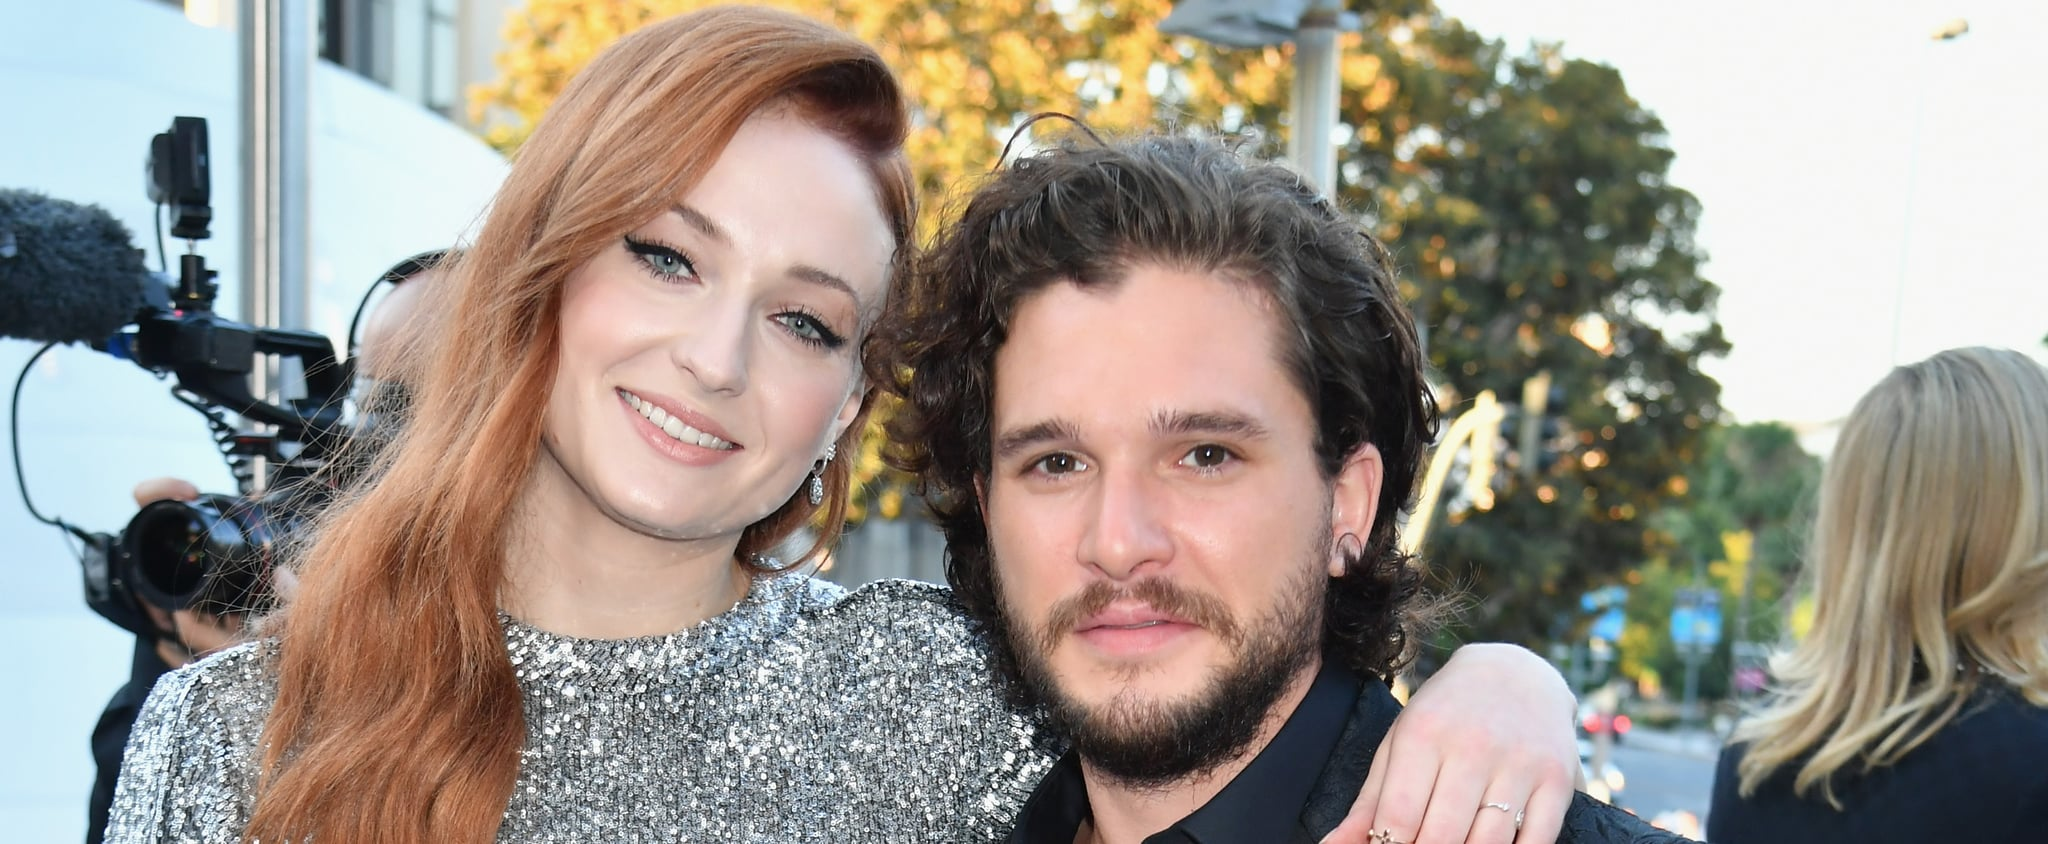 Kit Harington's Quotes About Sophie Turner at ACE Comic-Con